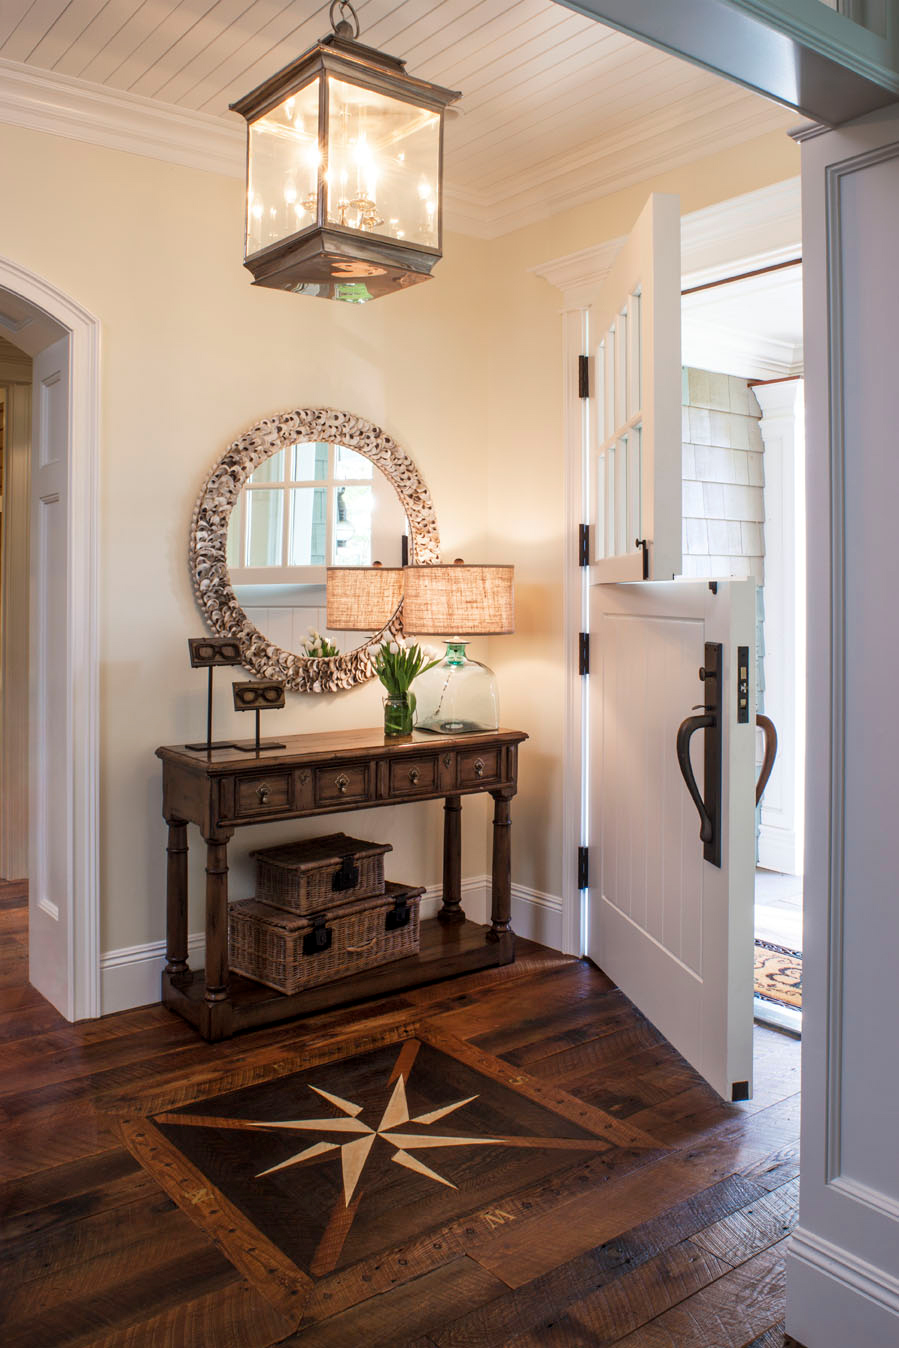 Best Rustic Entryway Decorating Ideas And Designs For